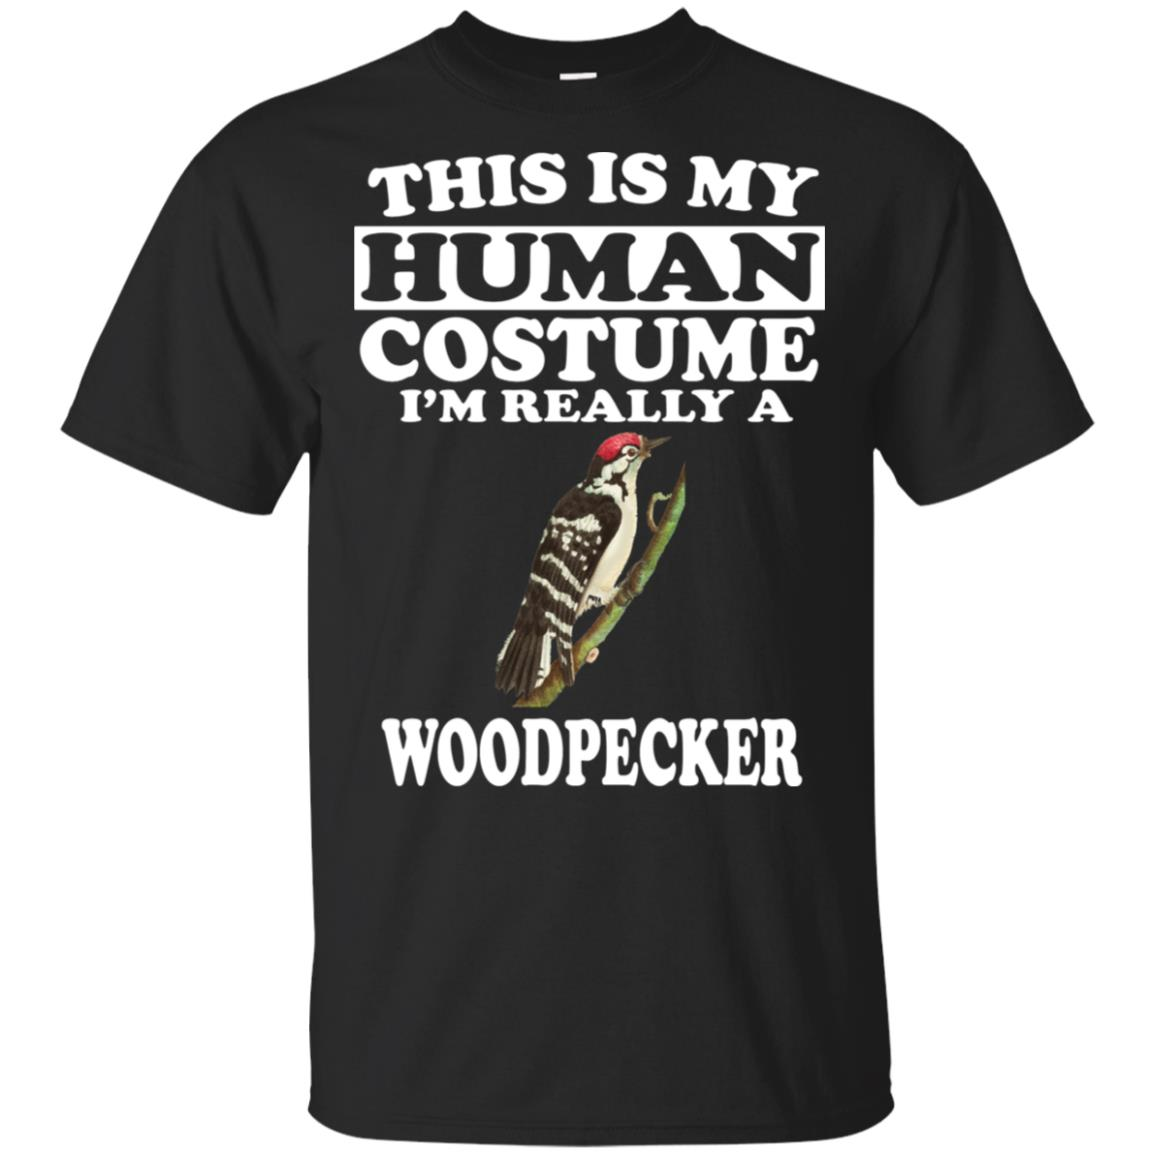 This Is My Human Costume I'm Really A Woodpecker Unisex Short Sleeve